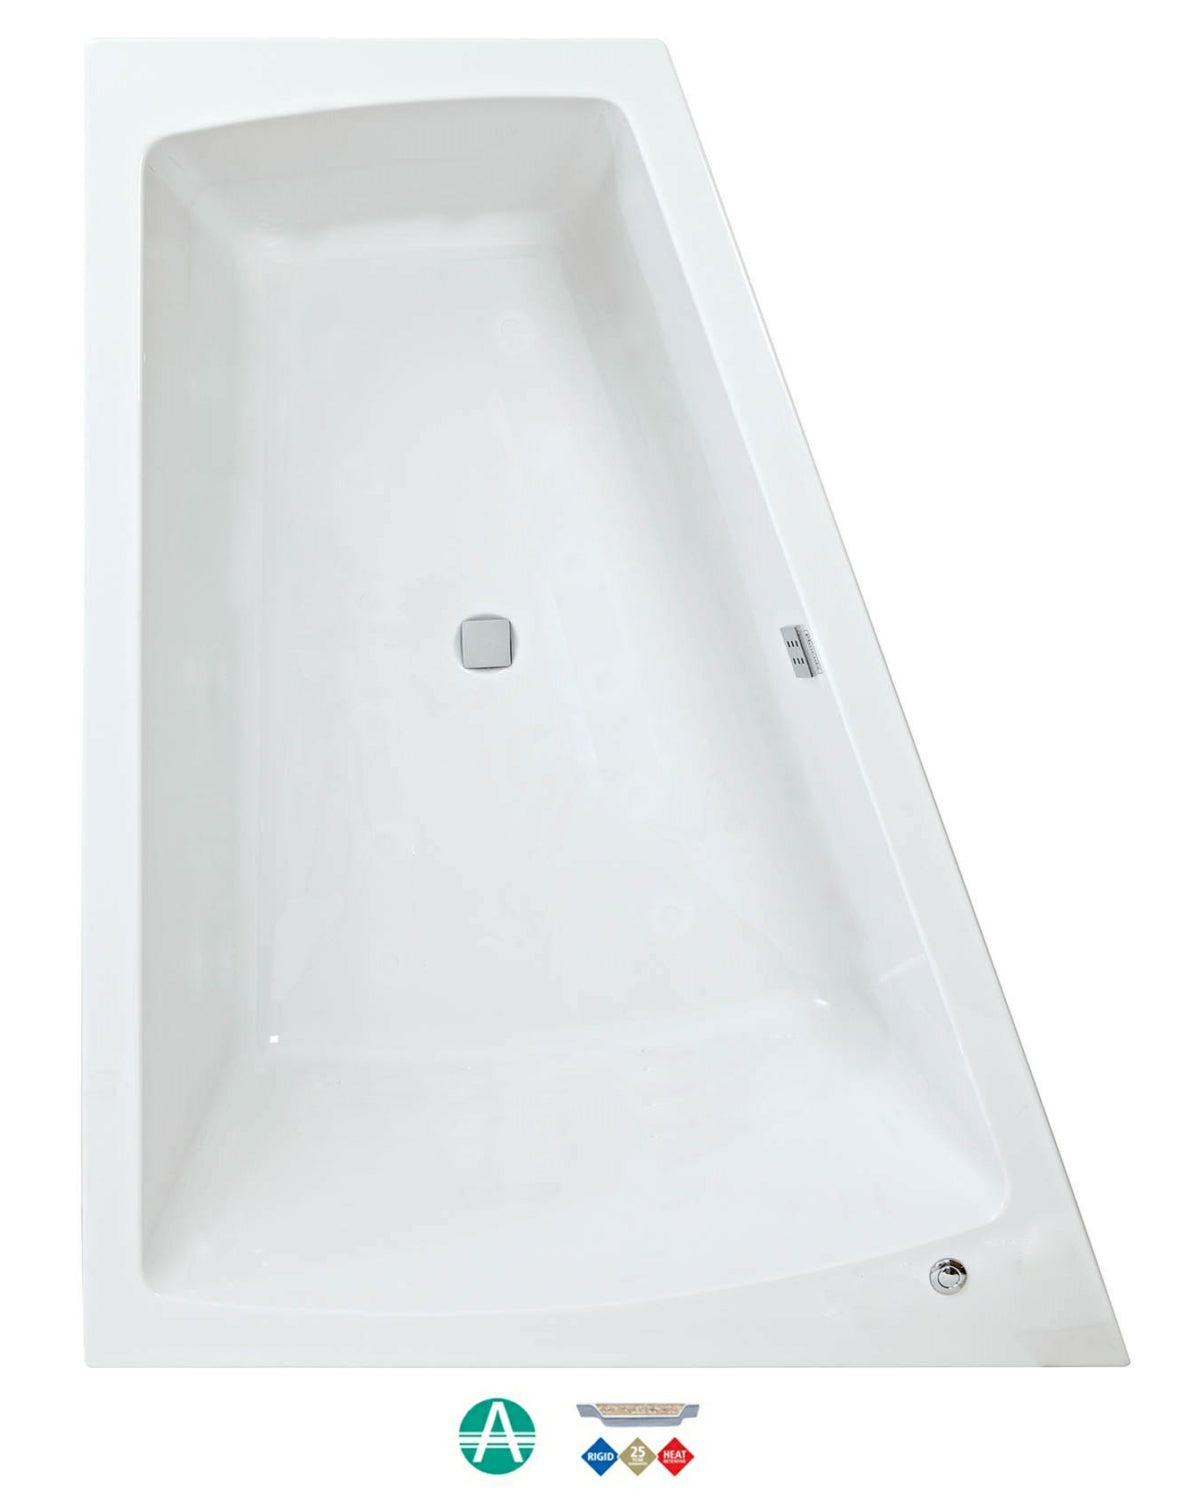 Phoenix Figura Amazonite - Double Ended Bath With Optional Whirlpool System - 1700mm x 1300mm(700mm)